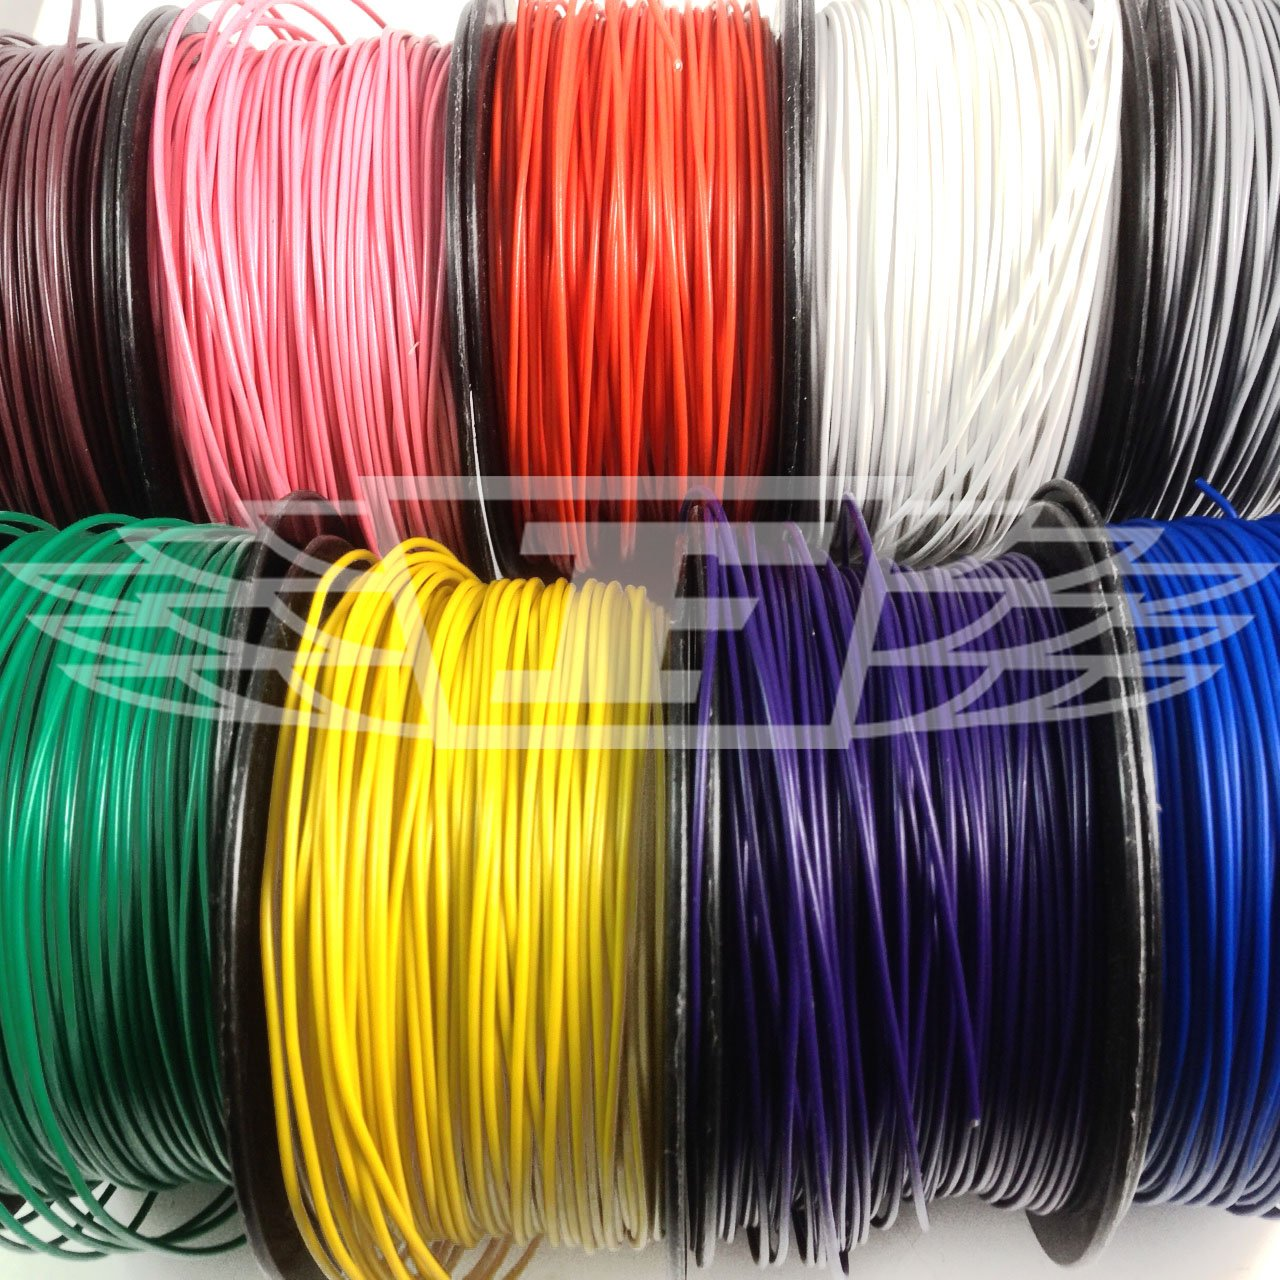 RED 20 METERS, SOLID CORE HOOKUP WIRE 1/0.6mm² 22AWG BREADBOARD JUMPERS SOLID CORE HOOKUP WIRE 1/0.6mm² 22AWG BREADBOARD JUMPERS Falcon Workshop